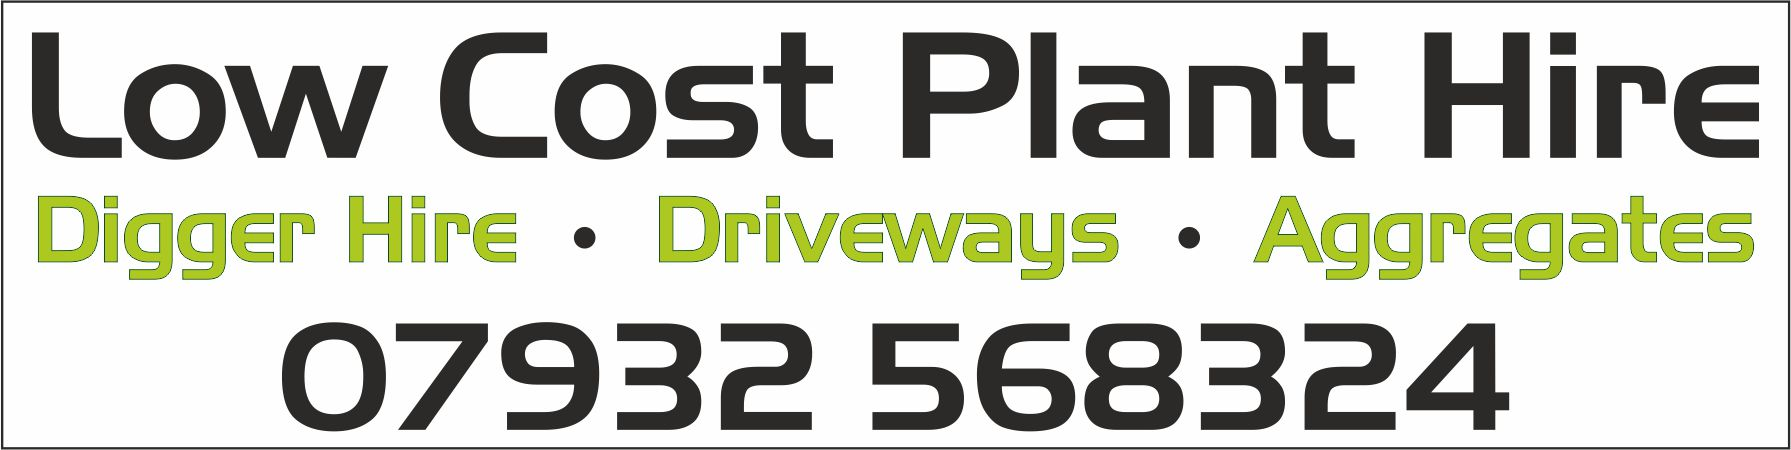 Low Cost Plant Hire